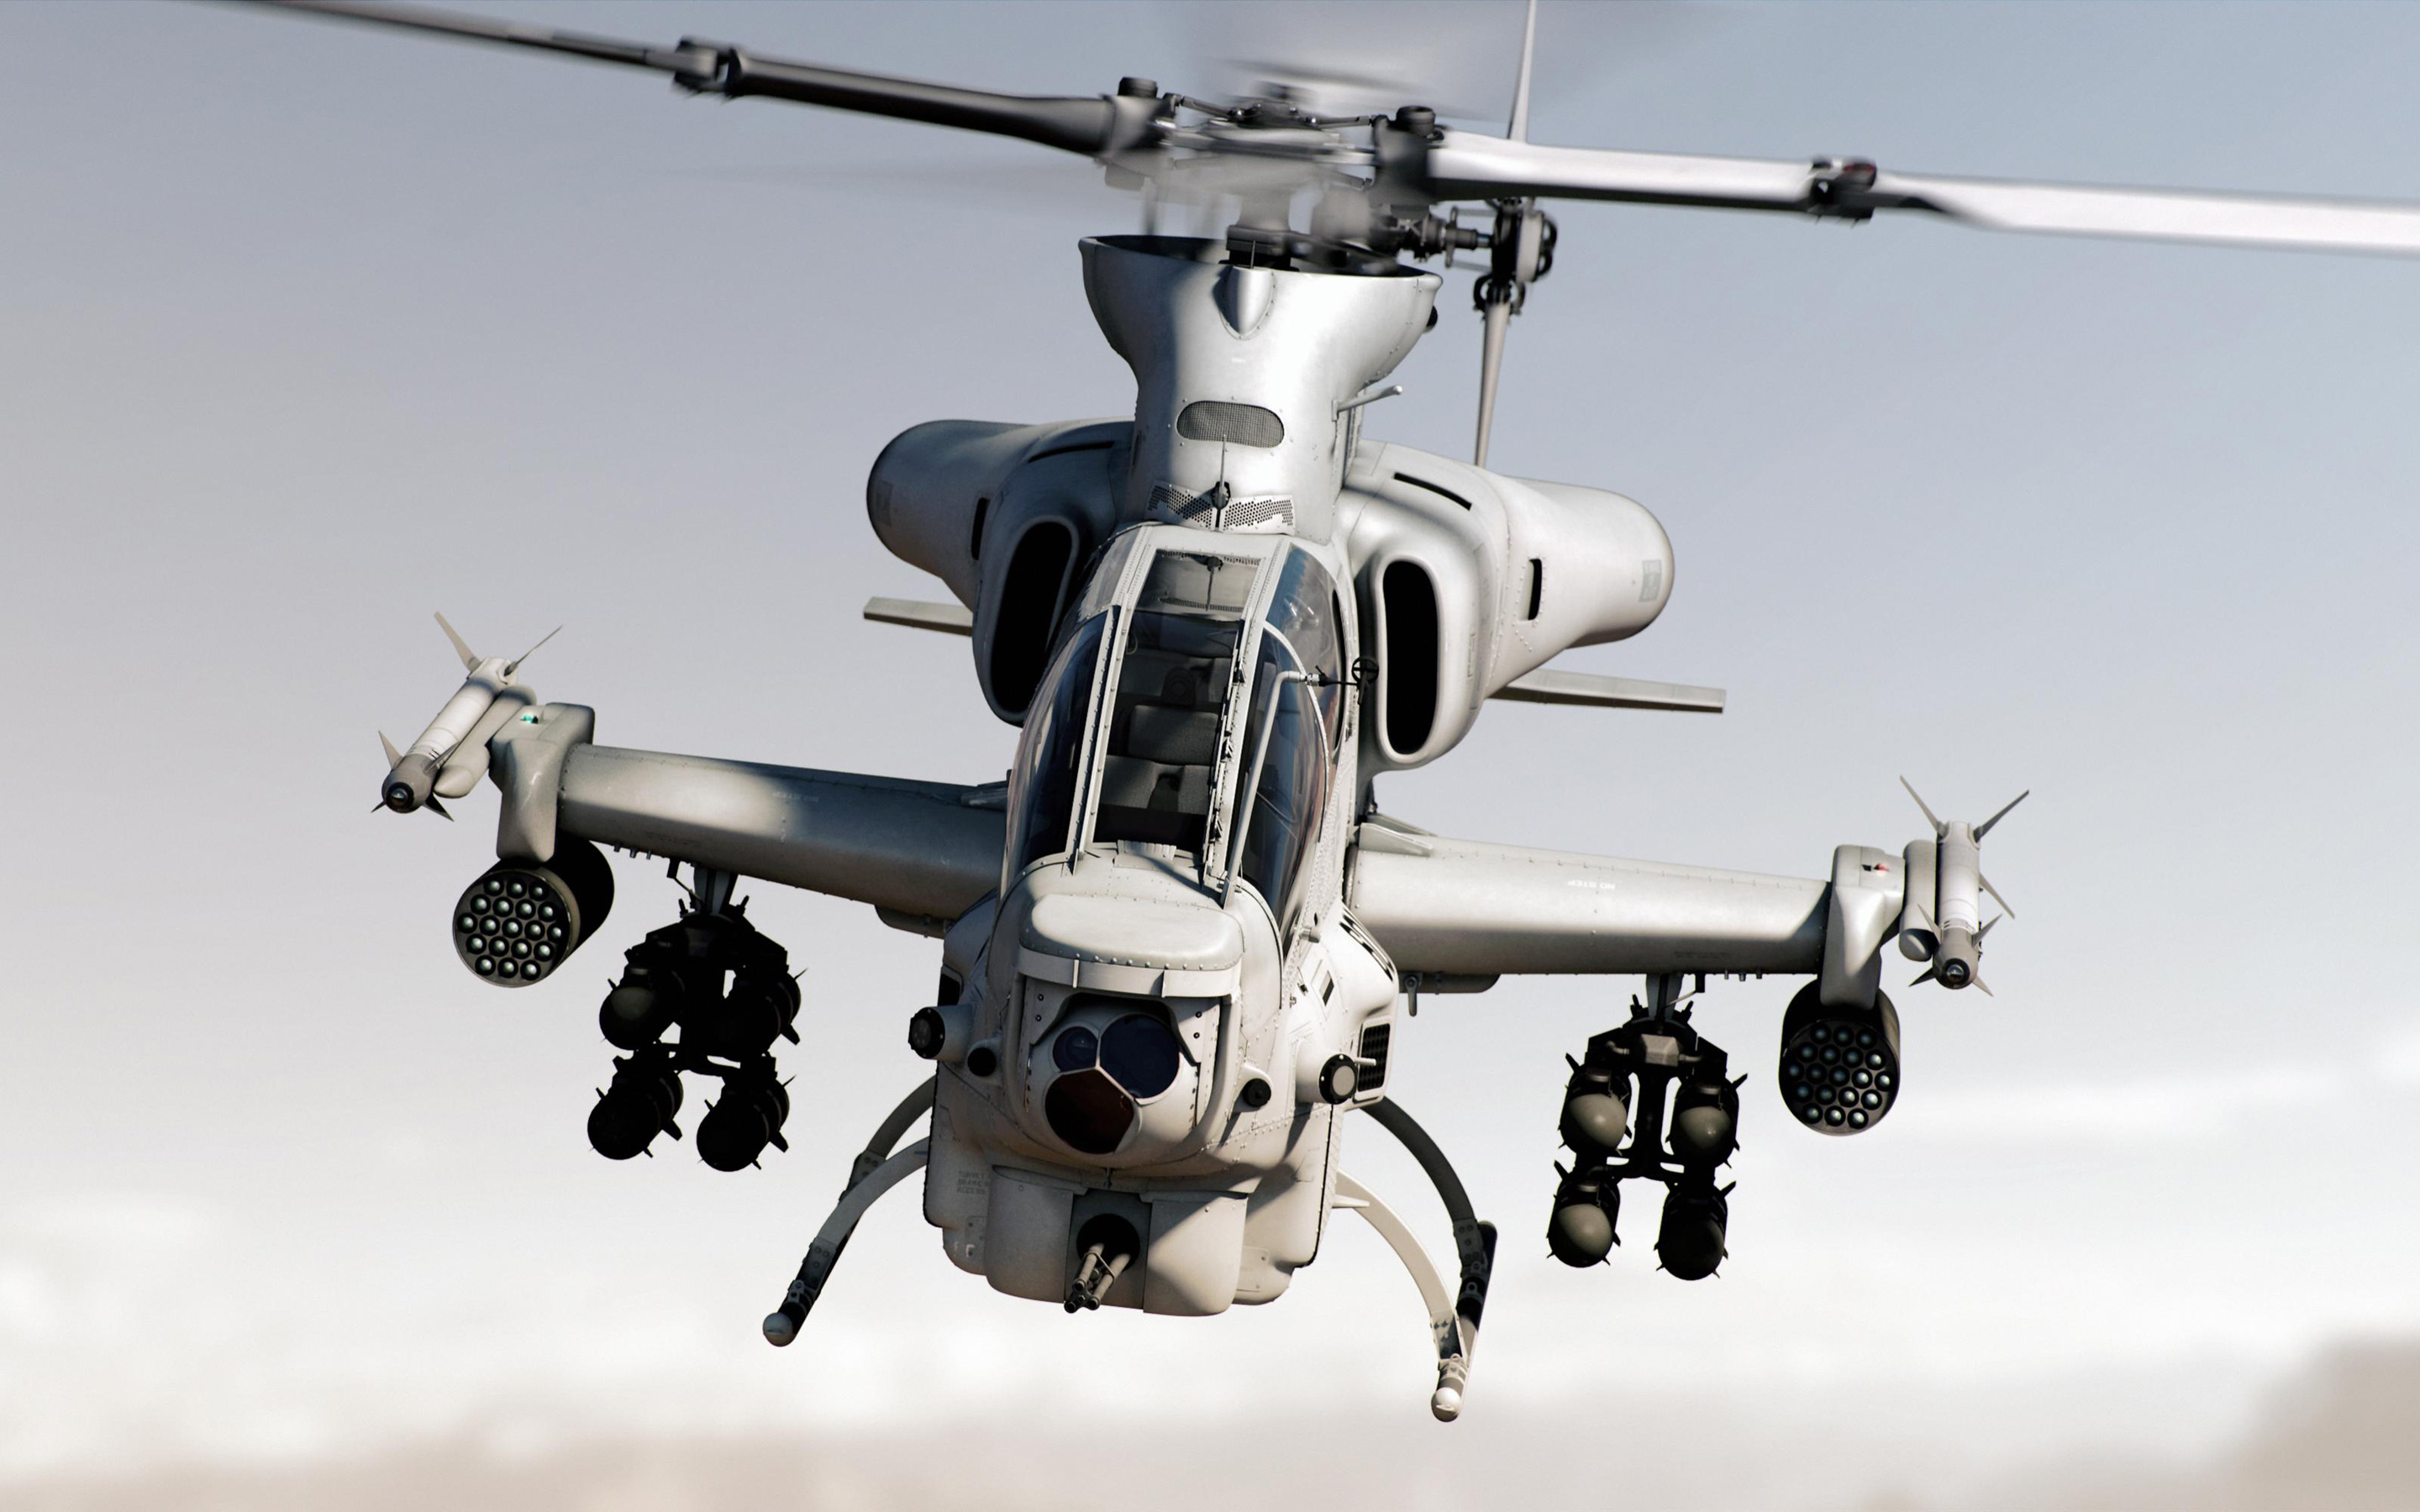 bell-ah-1z-viper-4k-combat-aircraft-bell-attack-helicopter.jpg